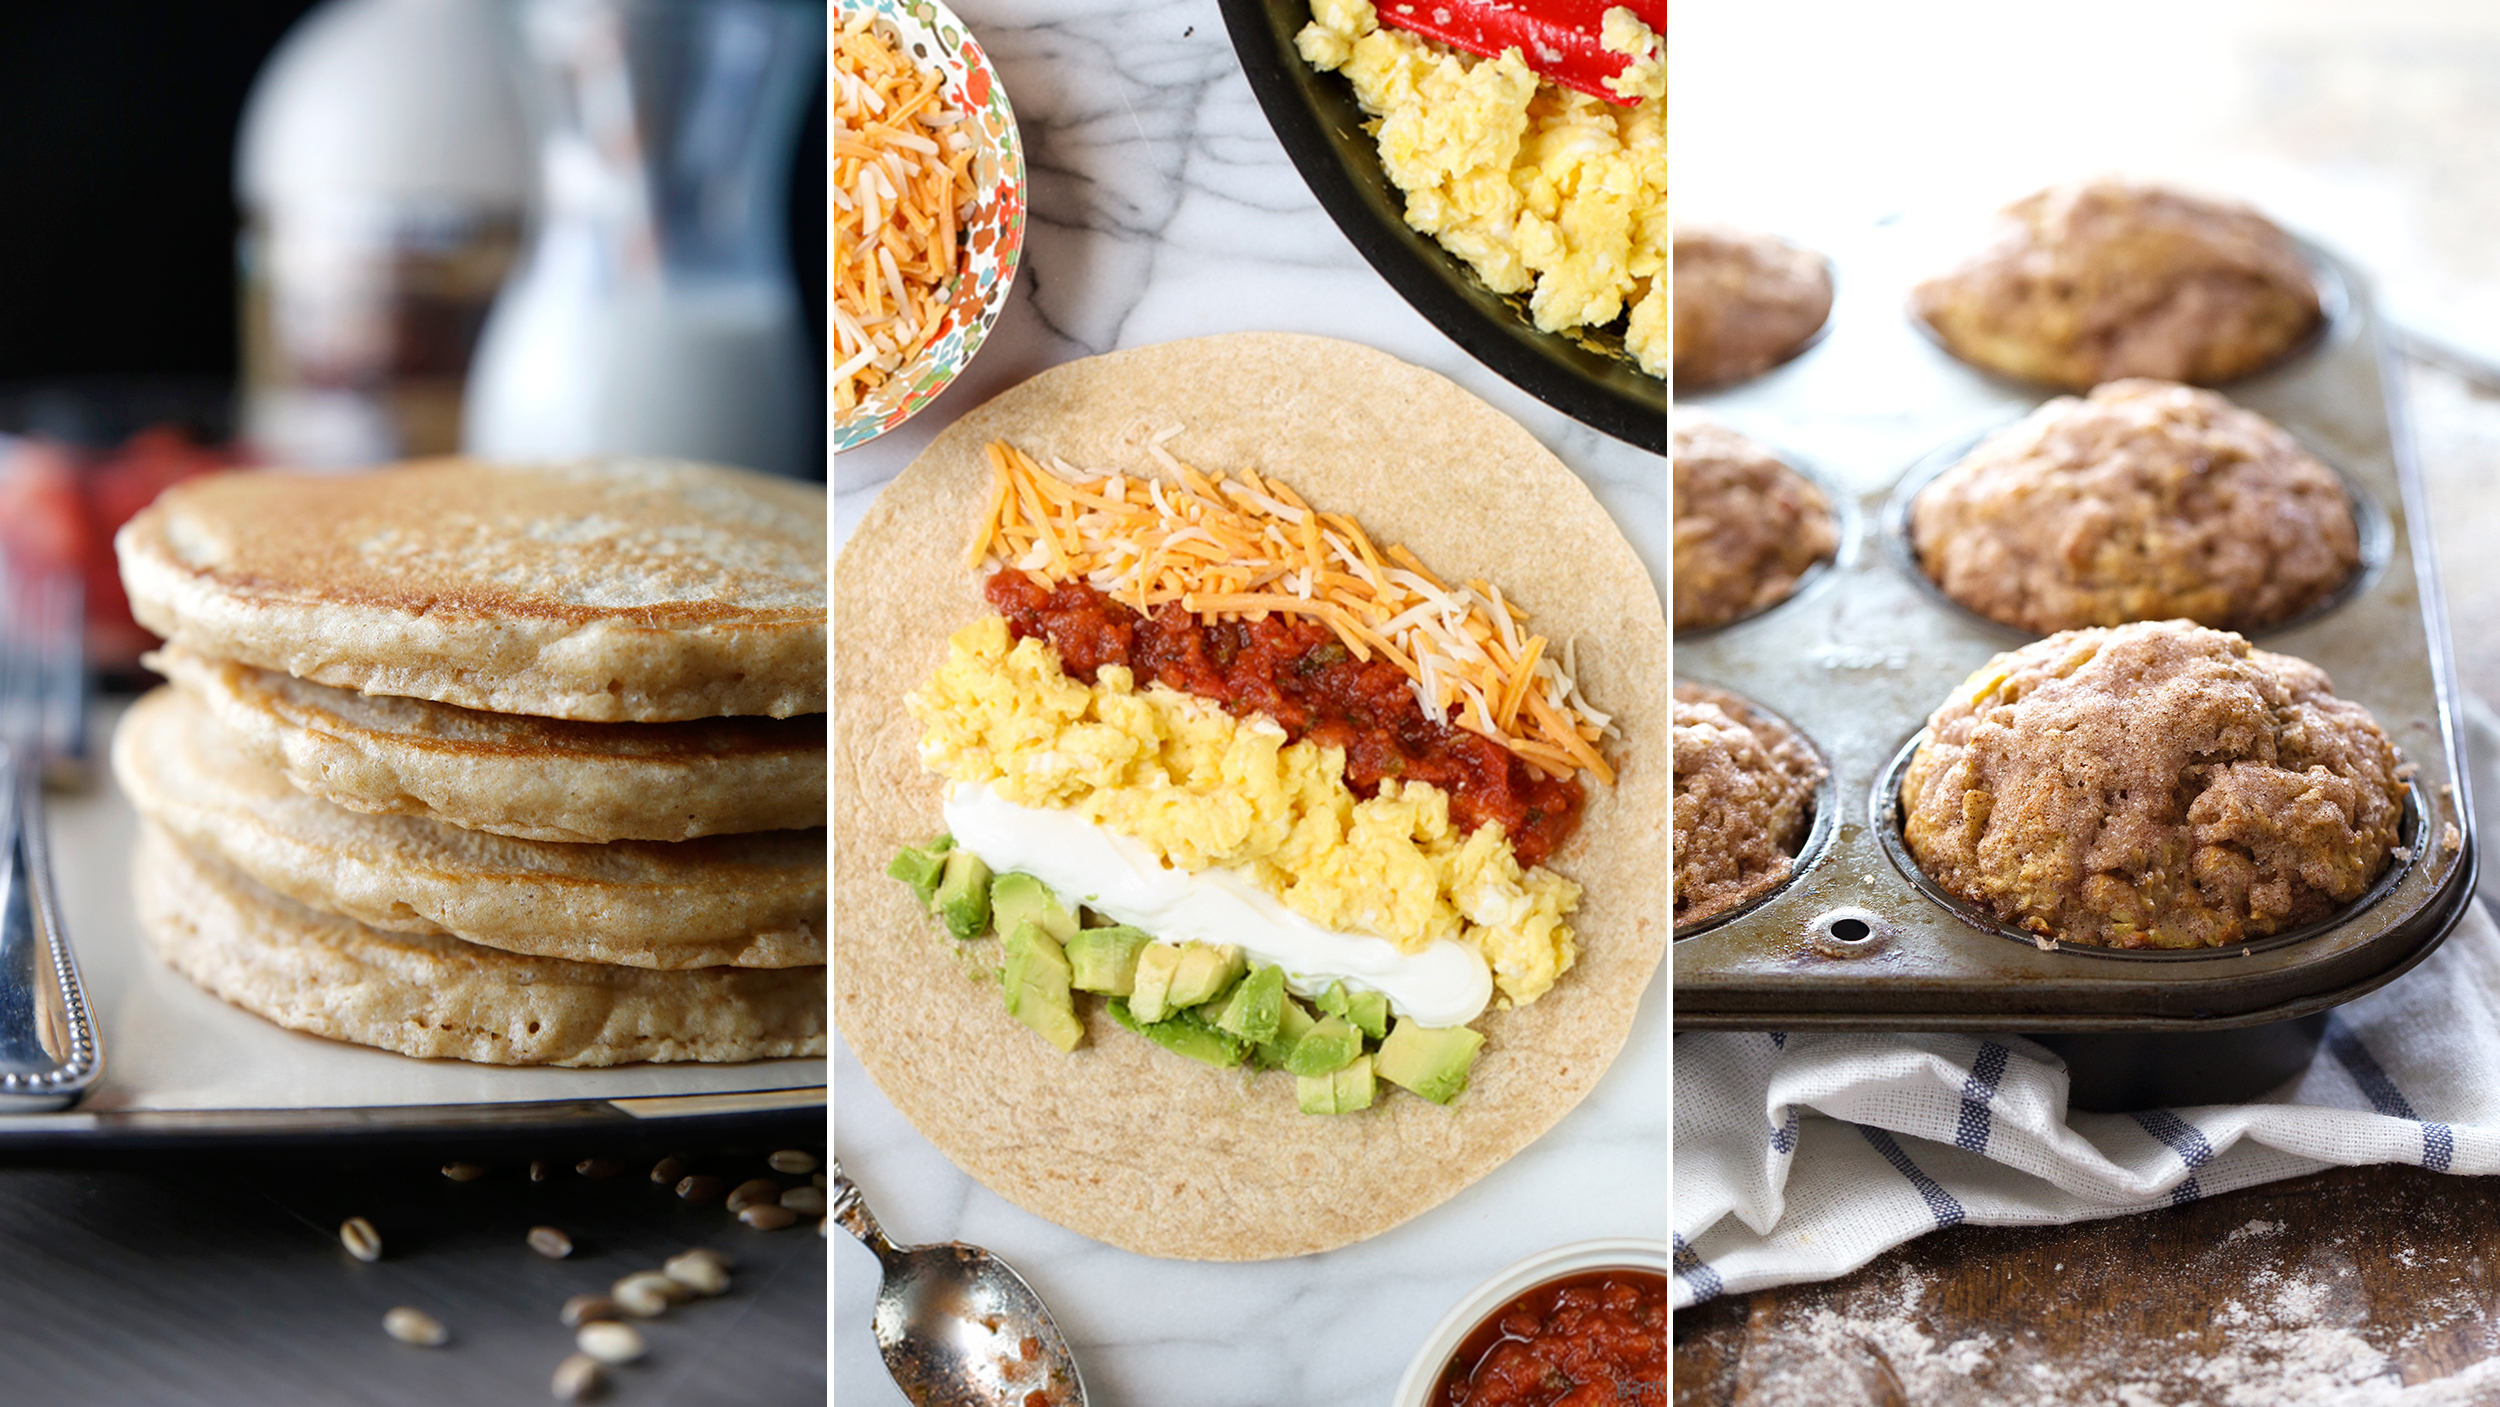 Healthy breakfast recipes: 6 easy ideas to start your